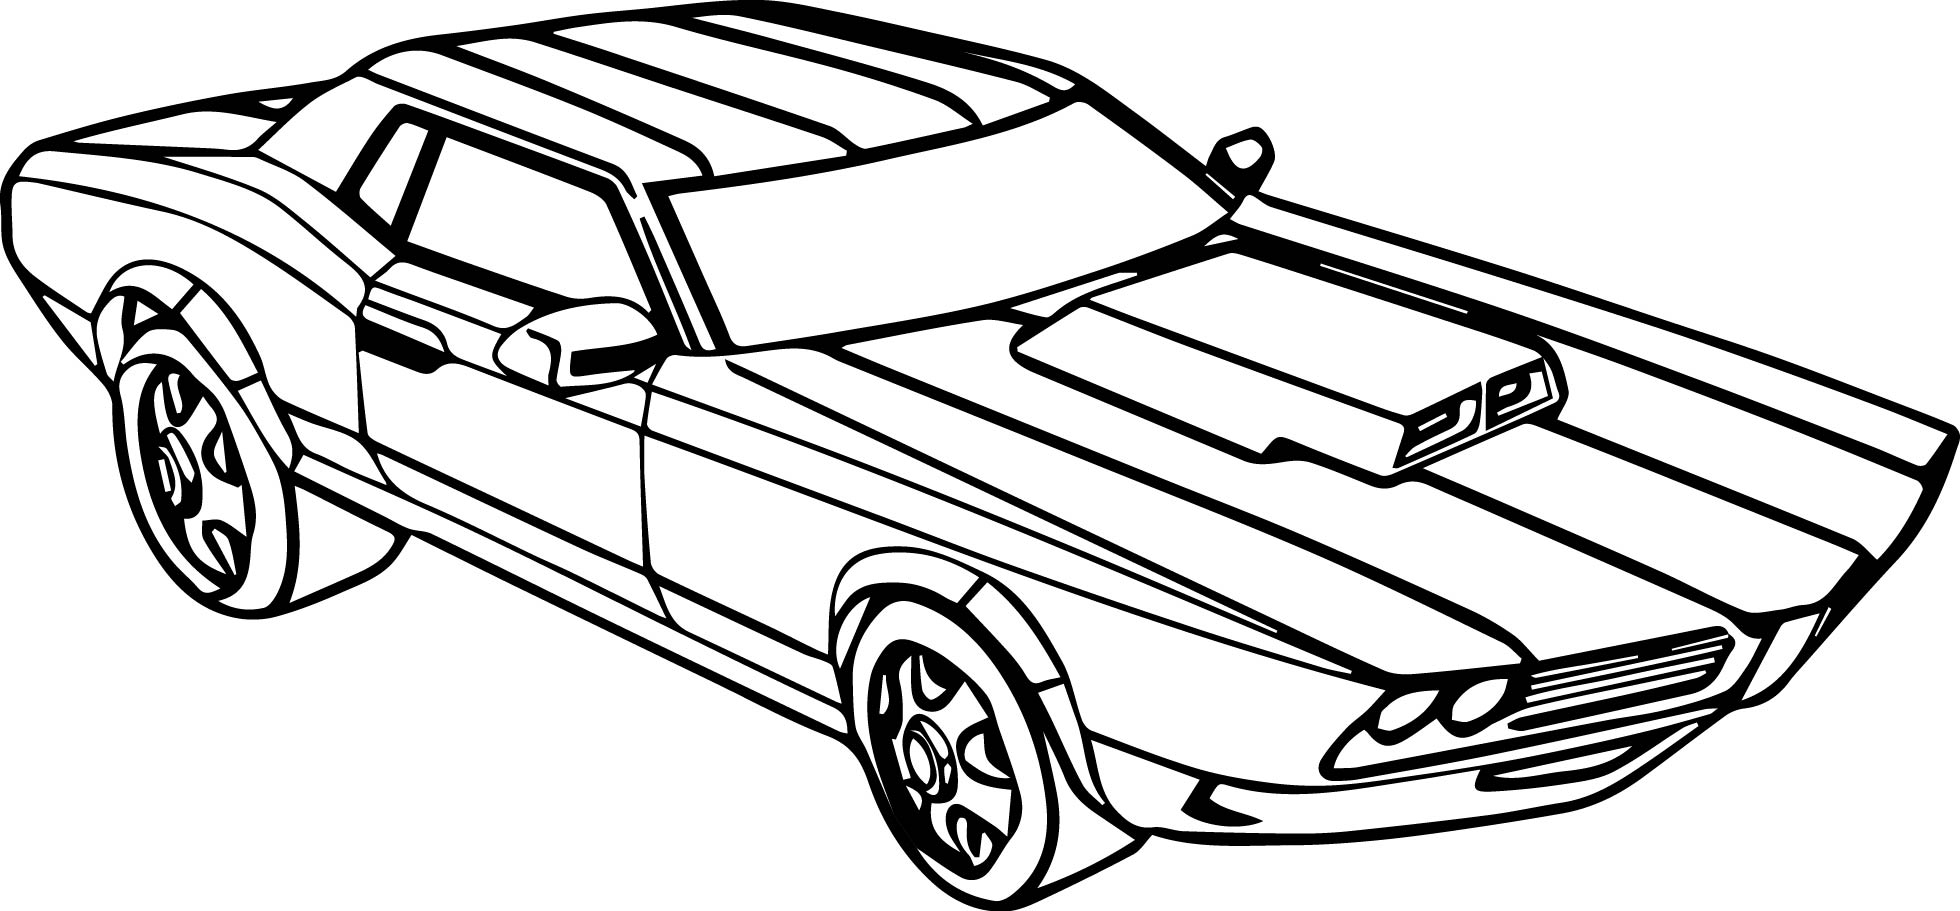 Stock Car Coloring Pages at GetDrawings com | Free for